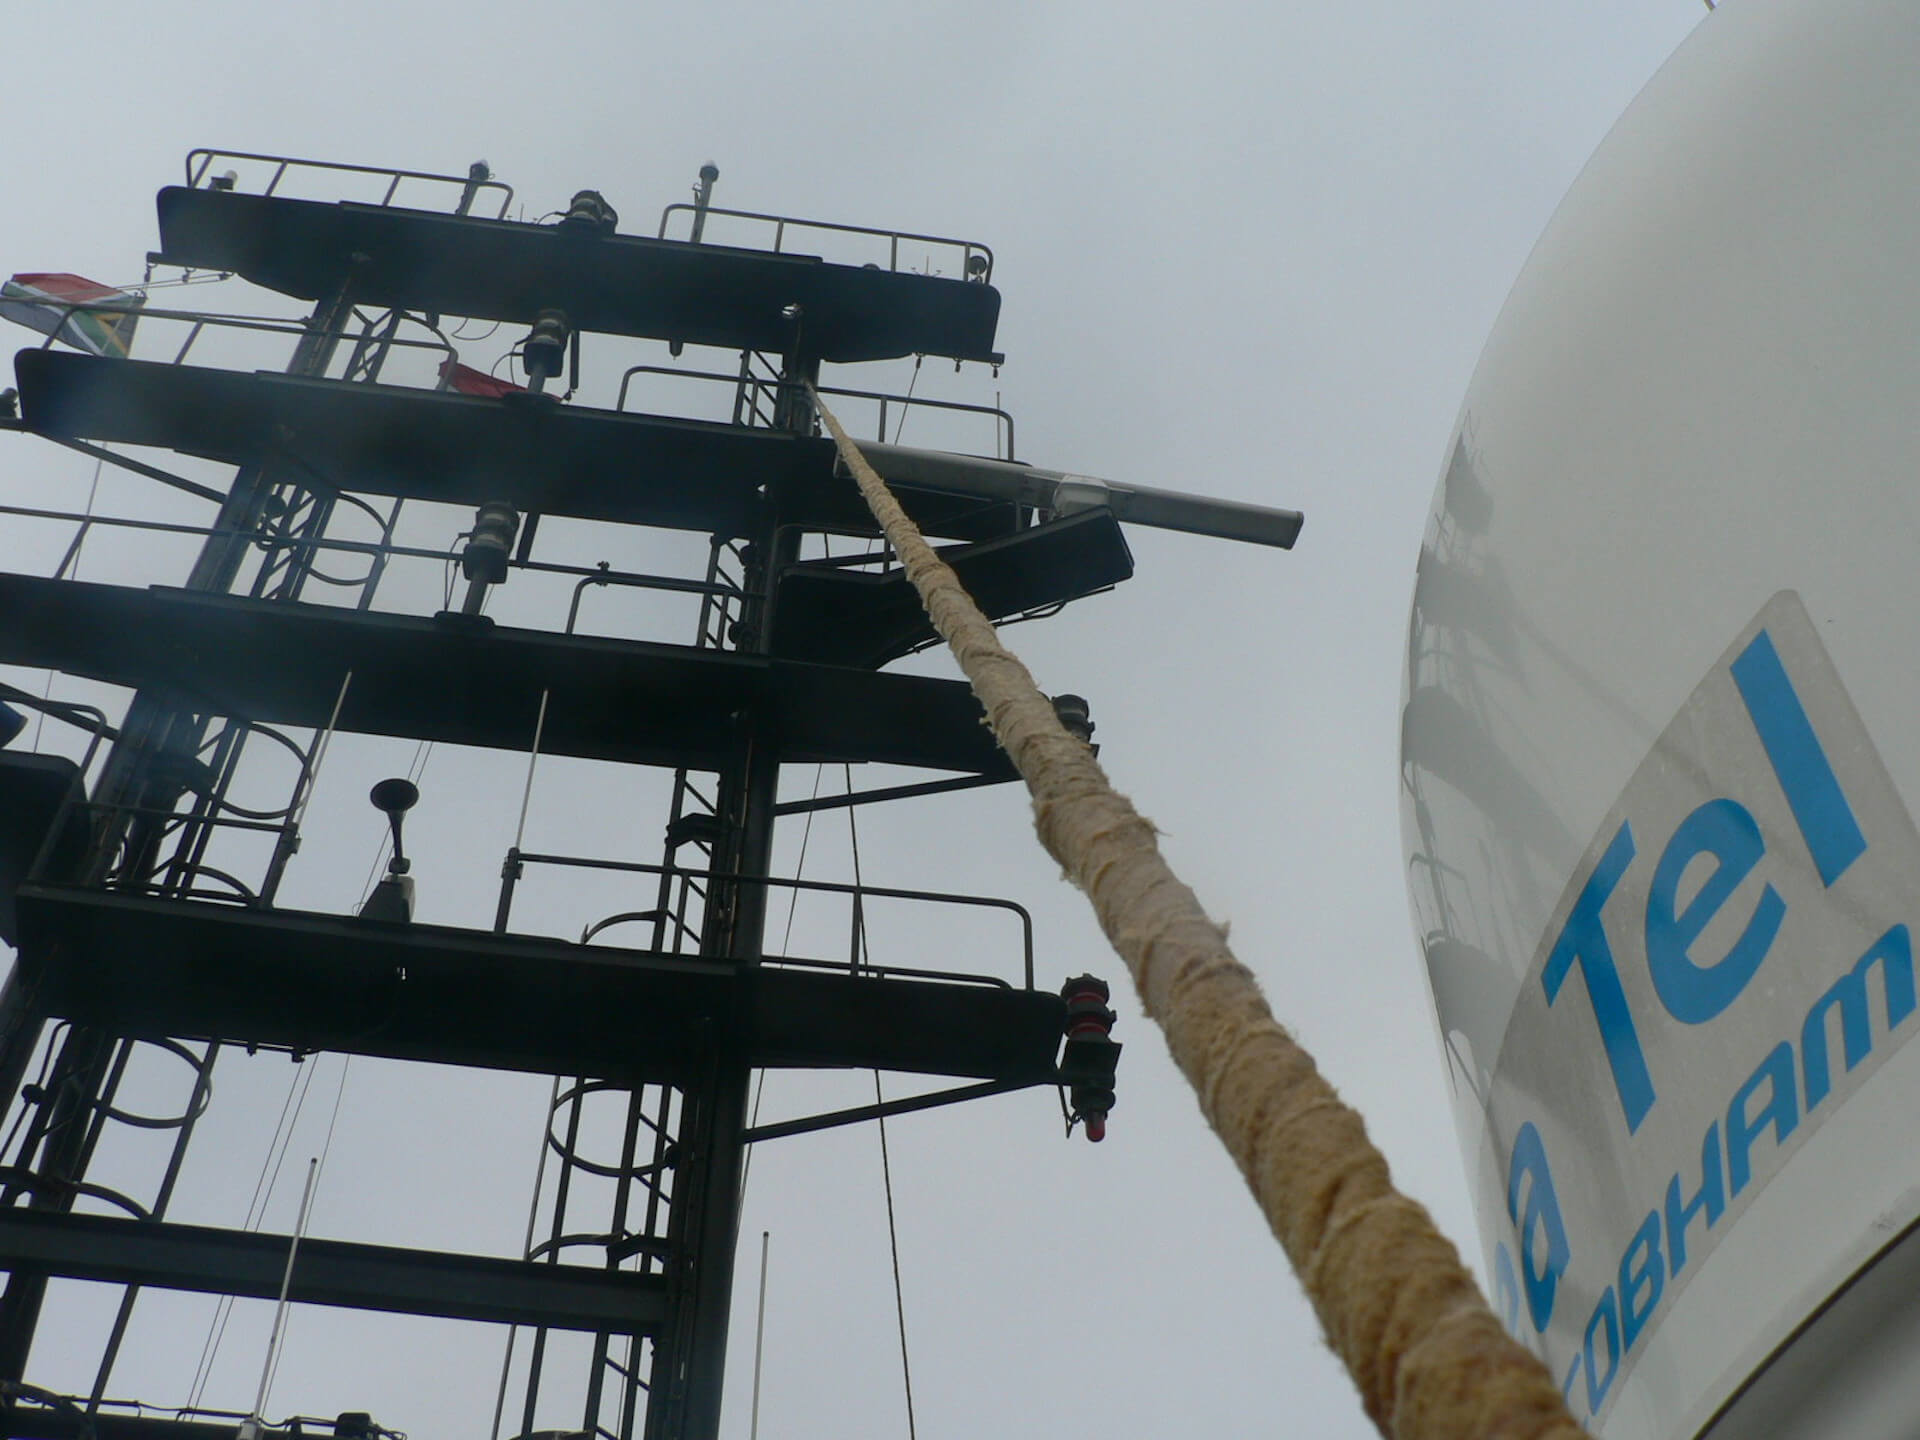 Maintenance on mast poles